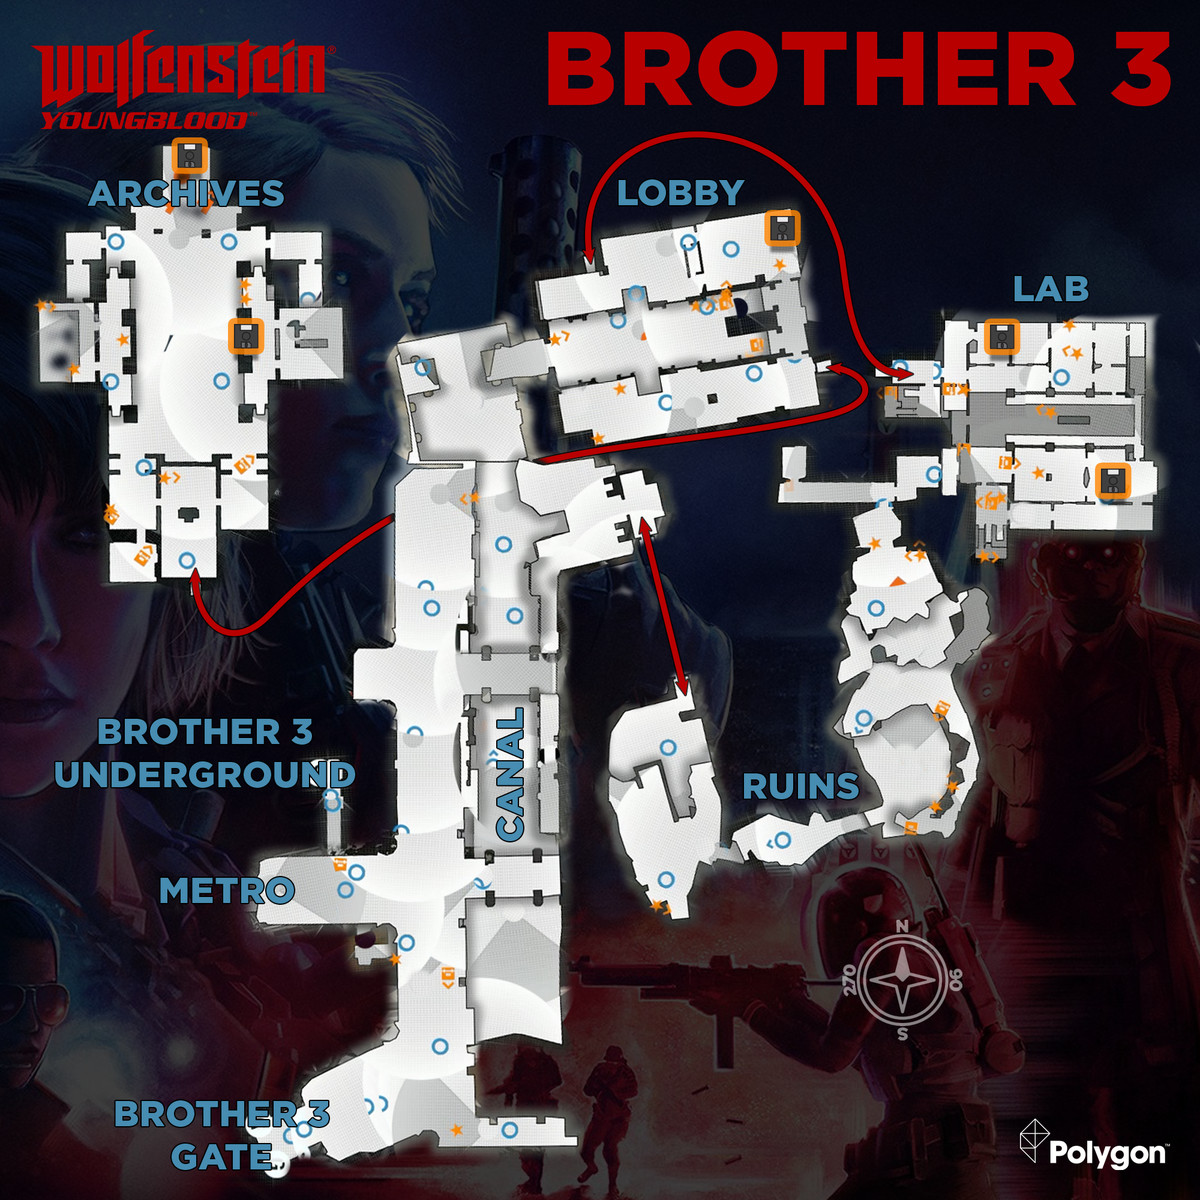 Wolfenstein: Youngblood Brother 3 map with Floppy Disks icons